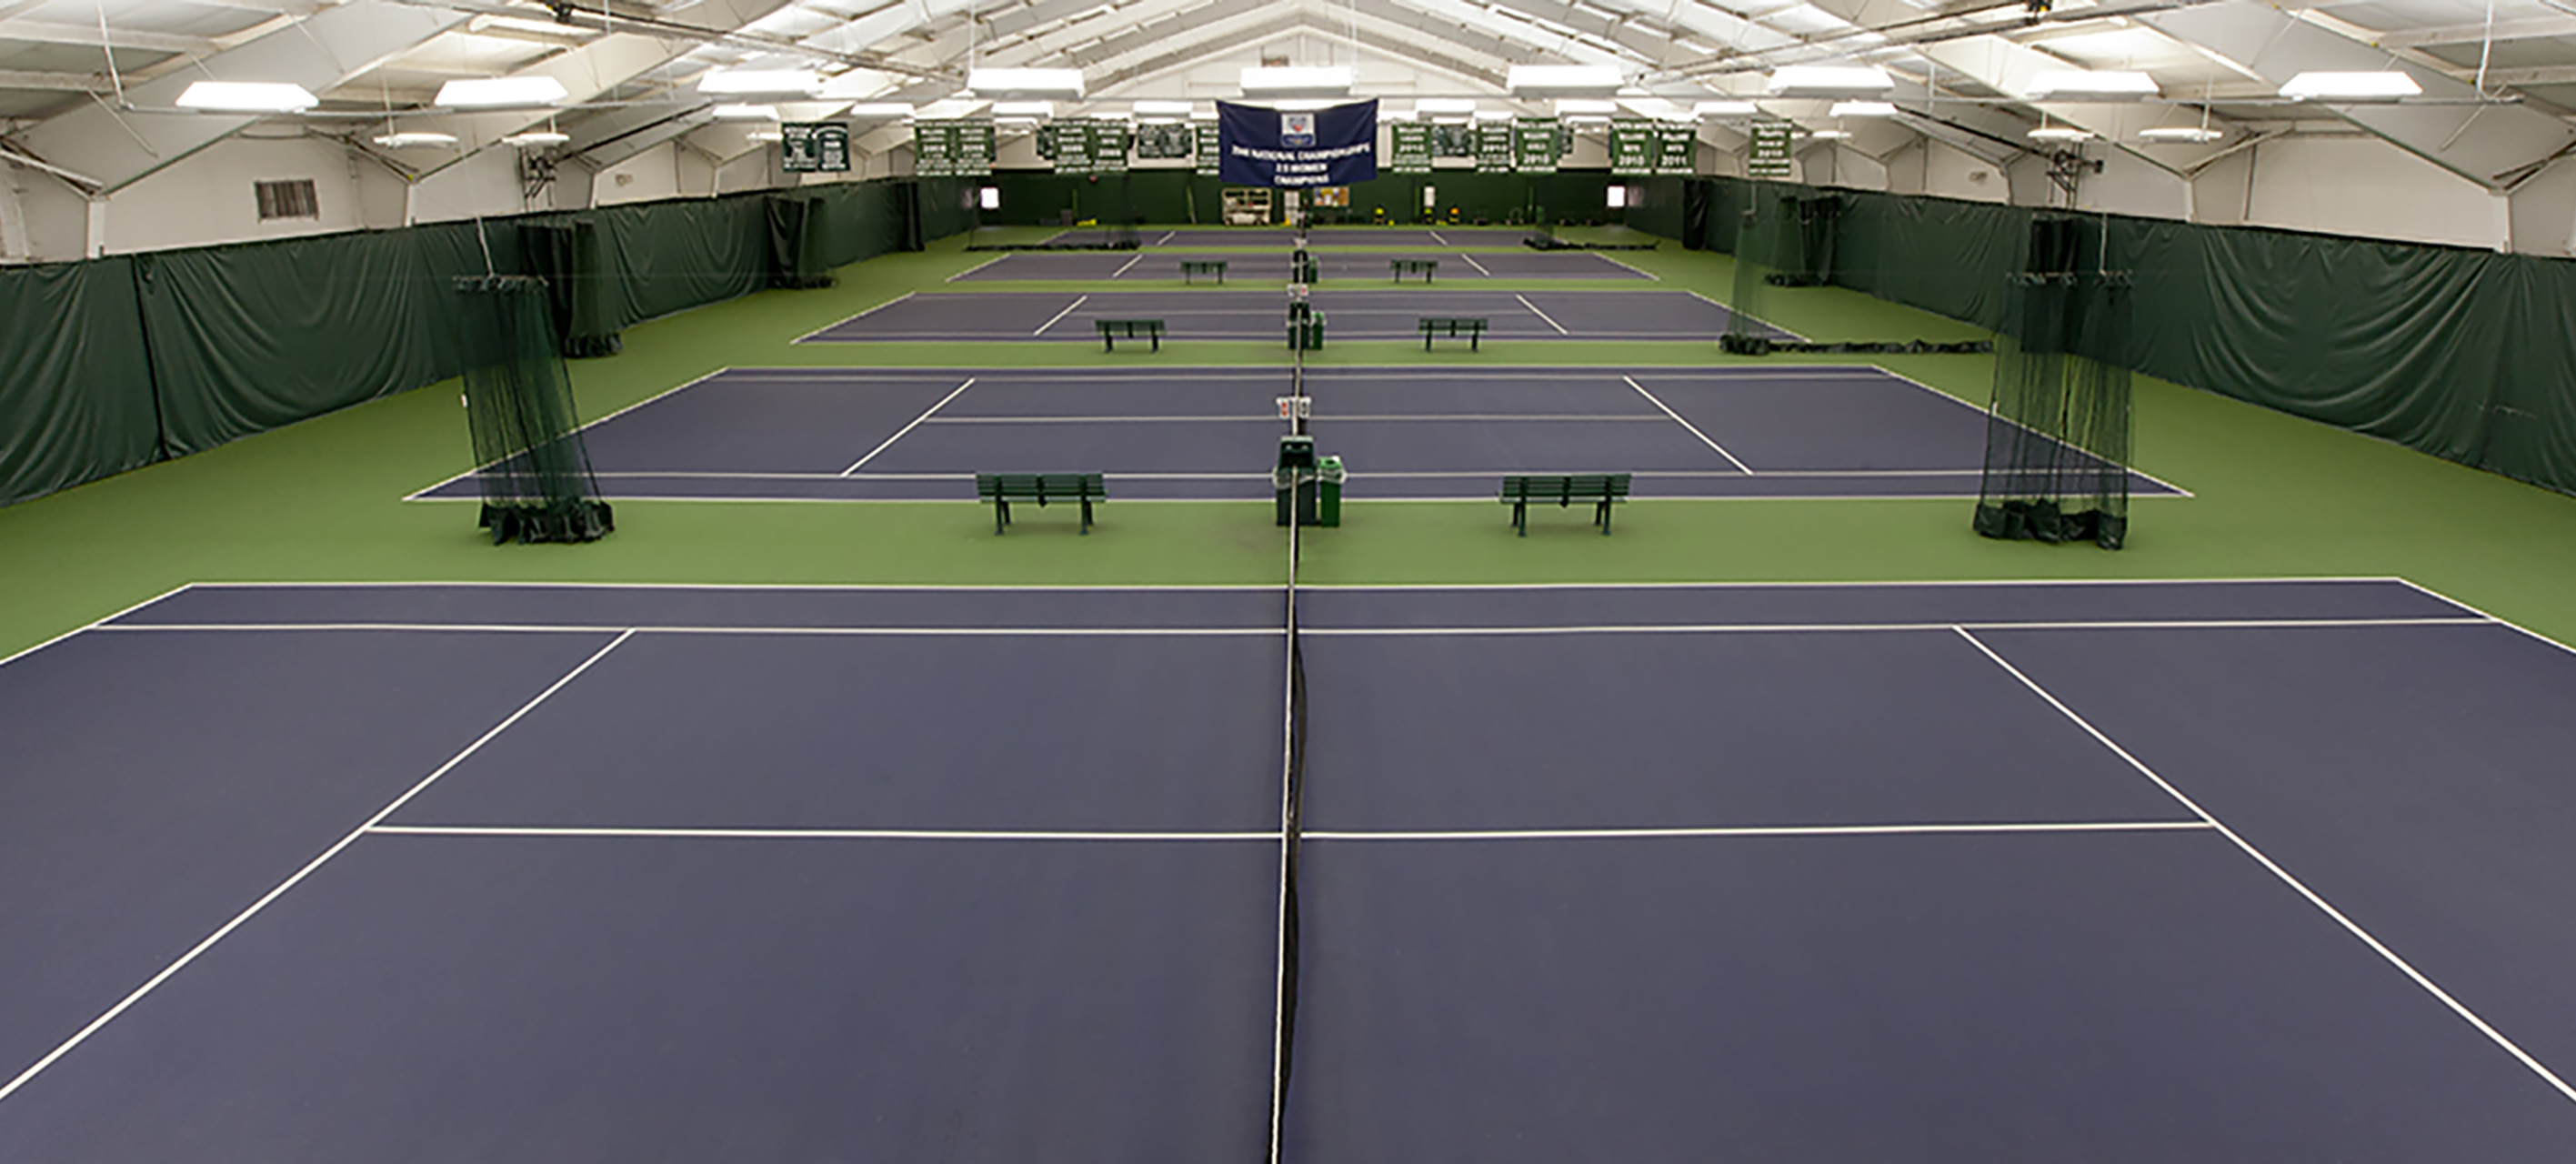 WILLOWS RACQUET AND FITNESS CENTRE